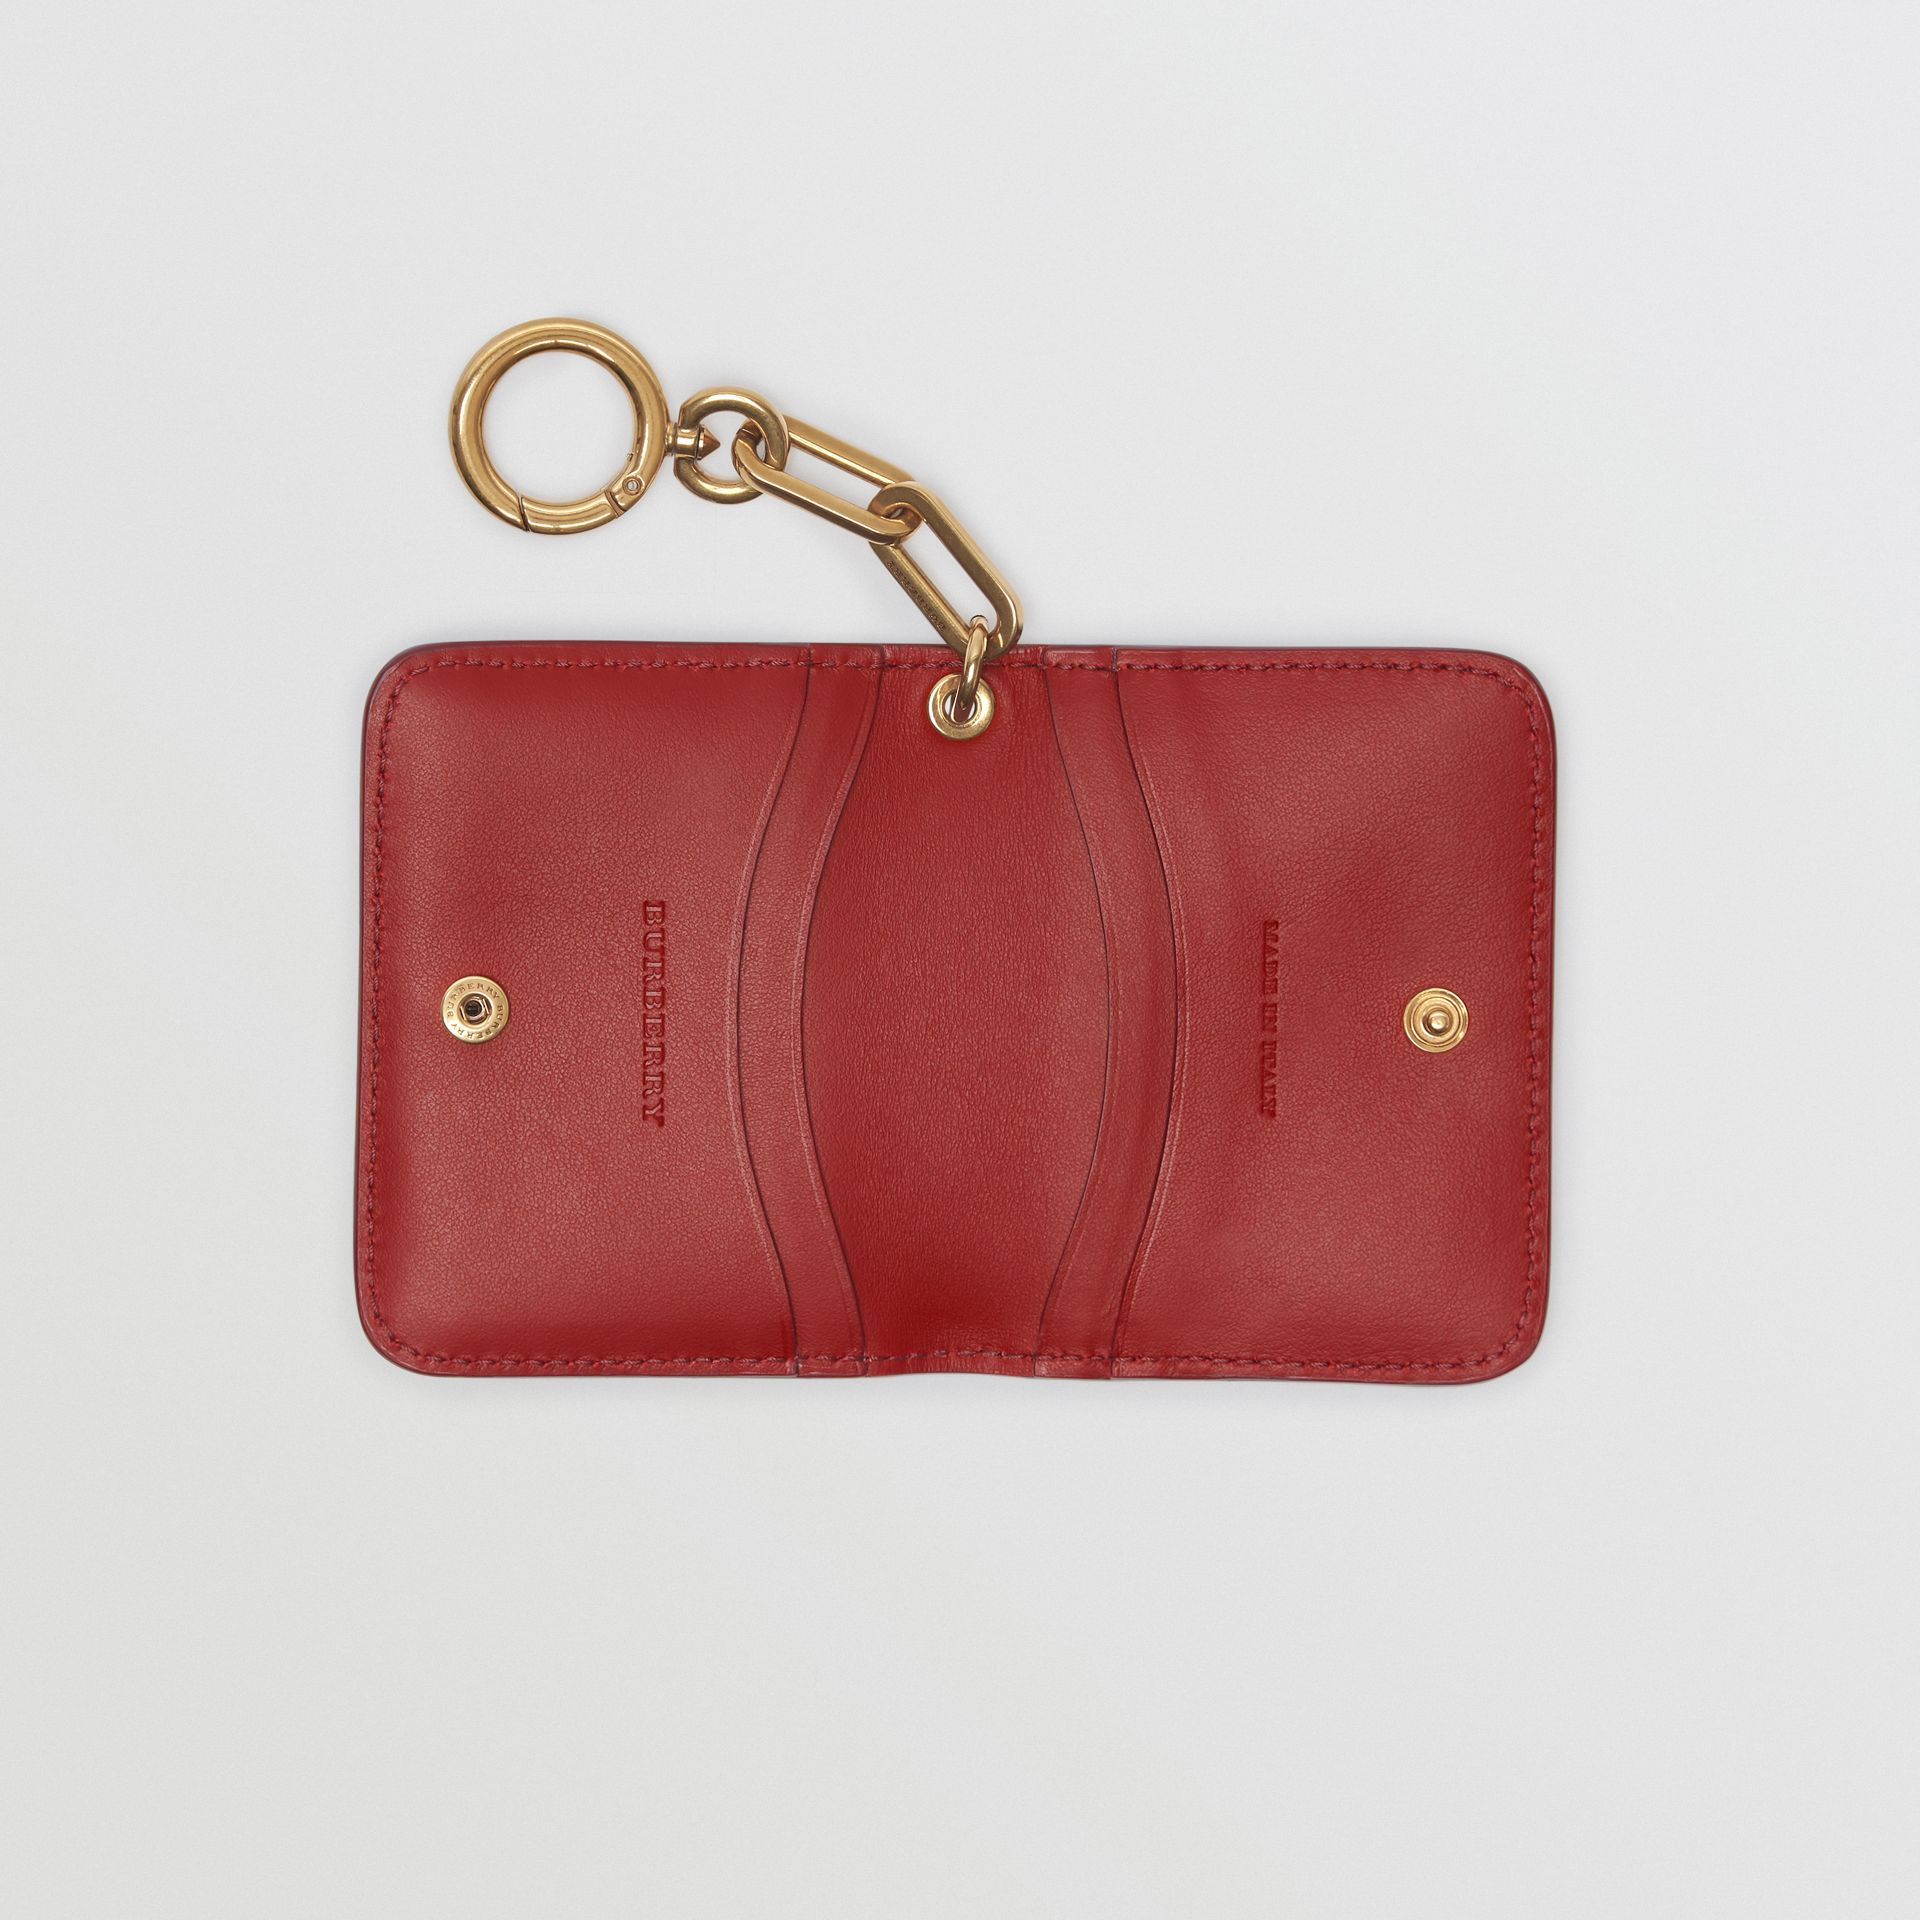 Link Detail Patent Leather ID Card Case Charm in Crimson - Women | Burberry United States - gallery image 3